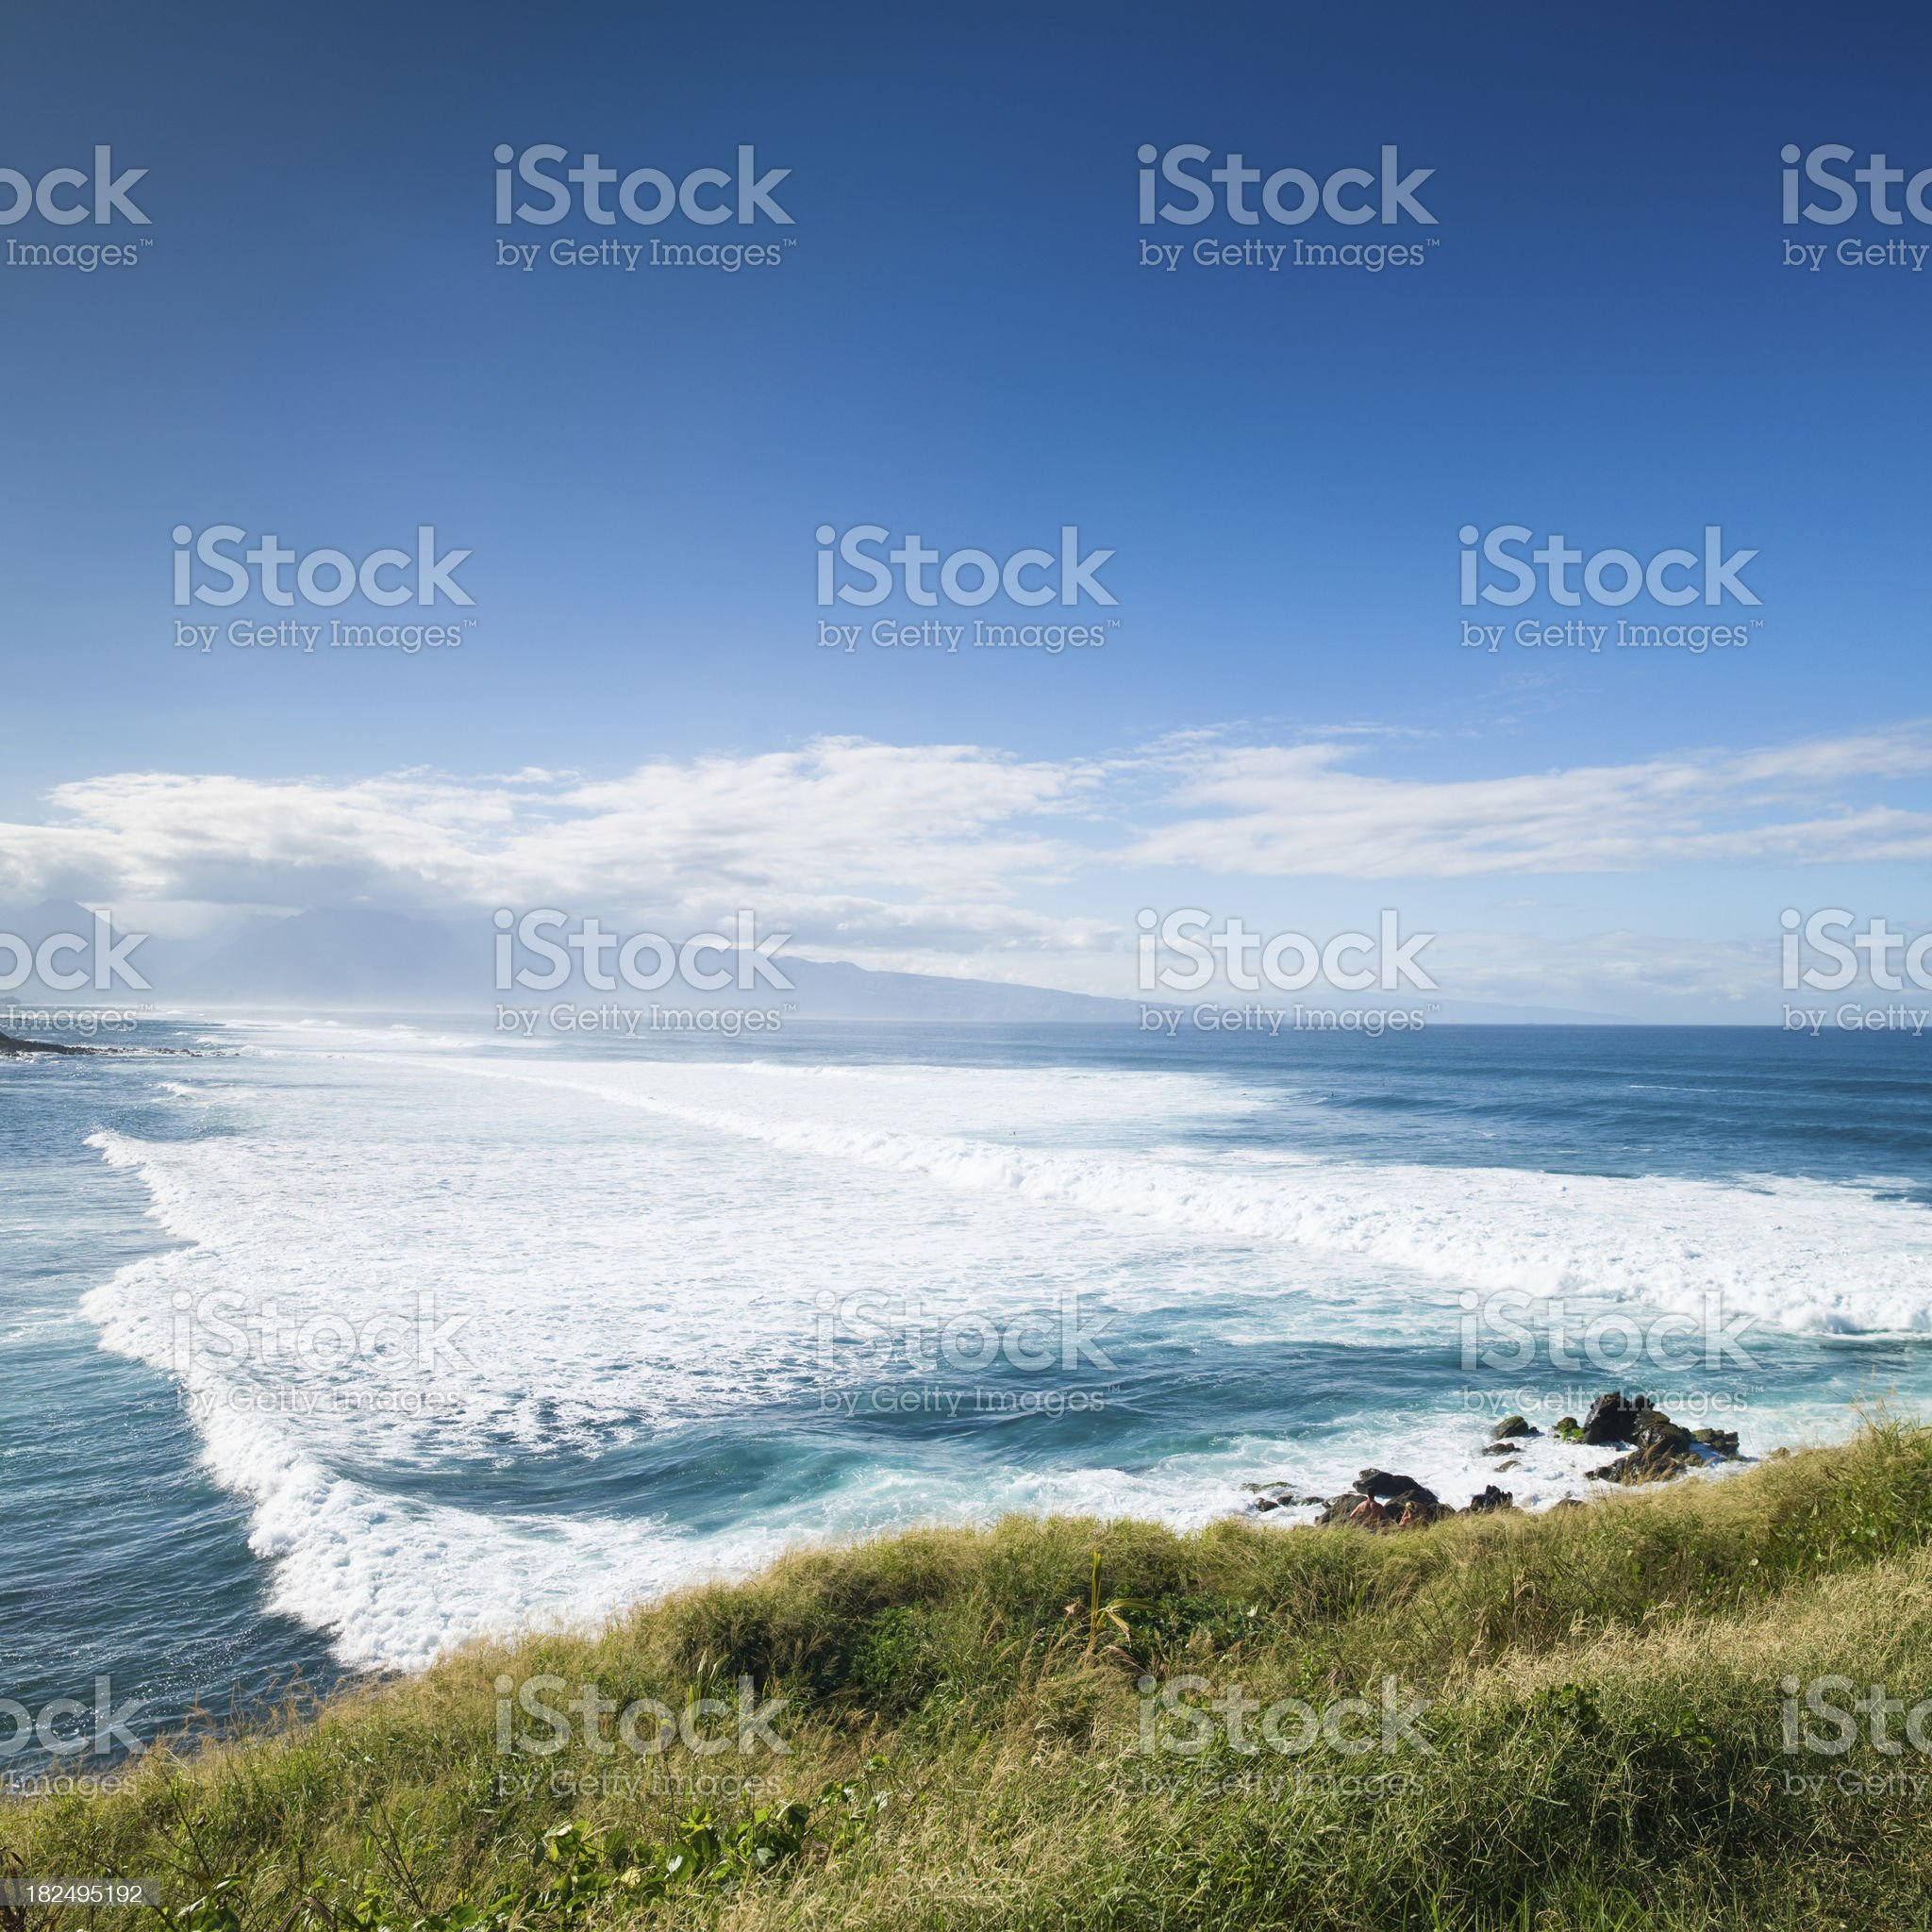 North Shore Coast Waves Maui Hawaii royalty-free stock photo